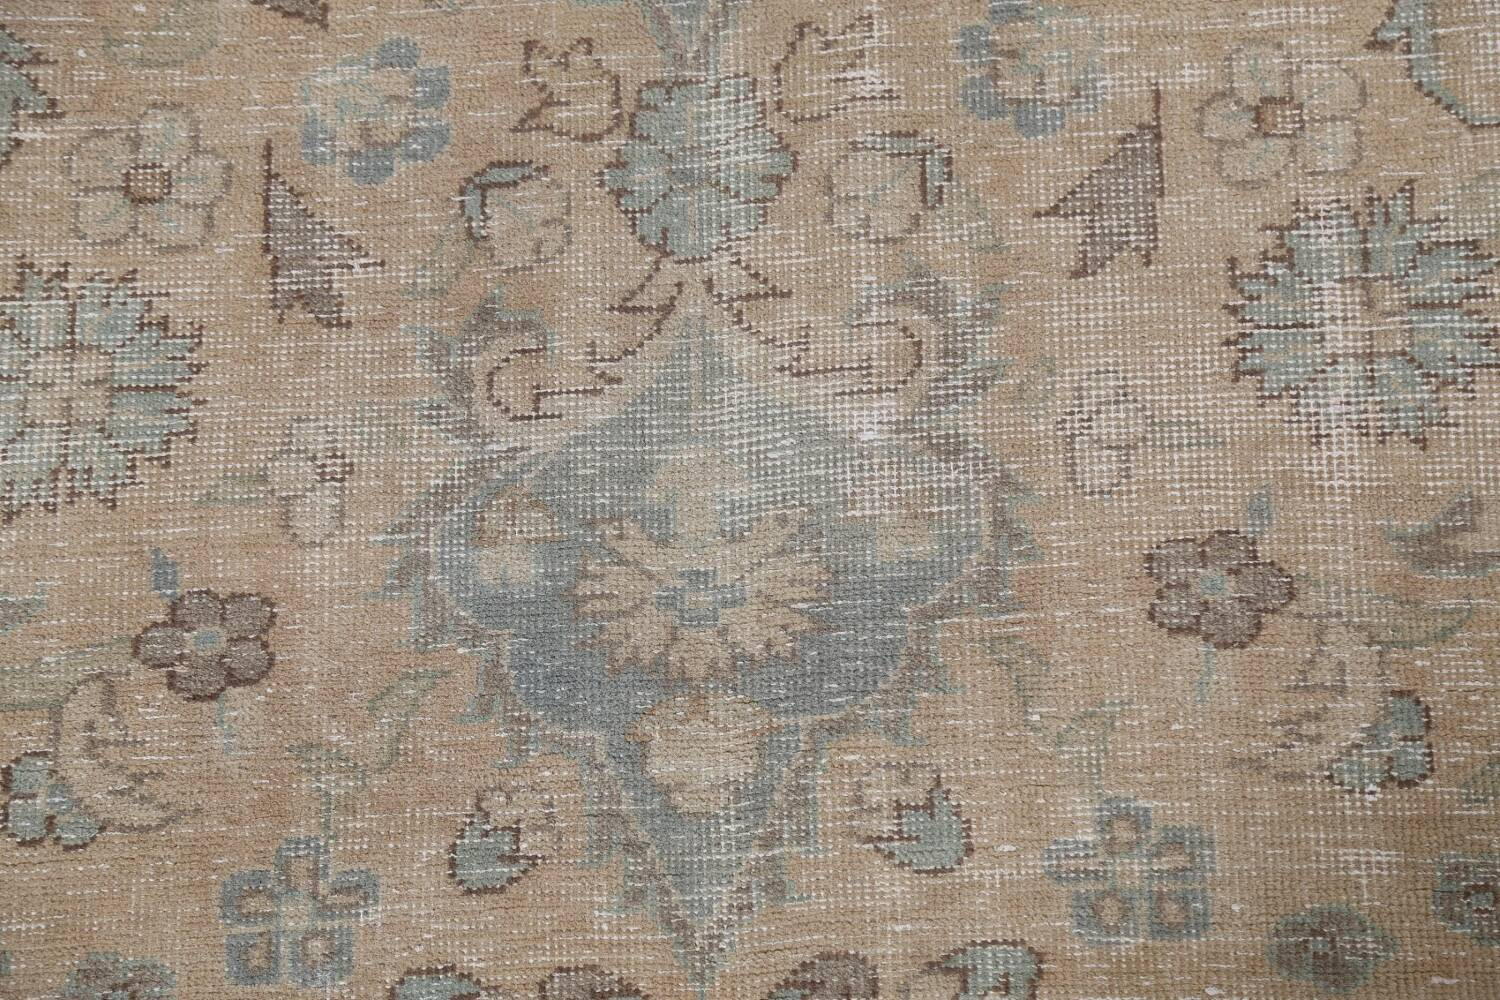 Muted Distressed Mashad Persian Area Rug 7x10 image 9